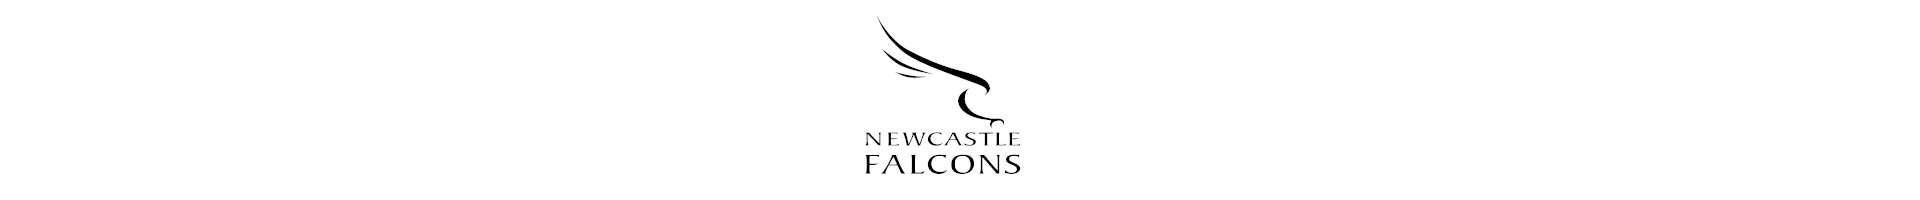 Newcastle Falcons Sponsorship